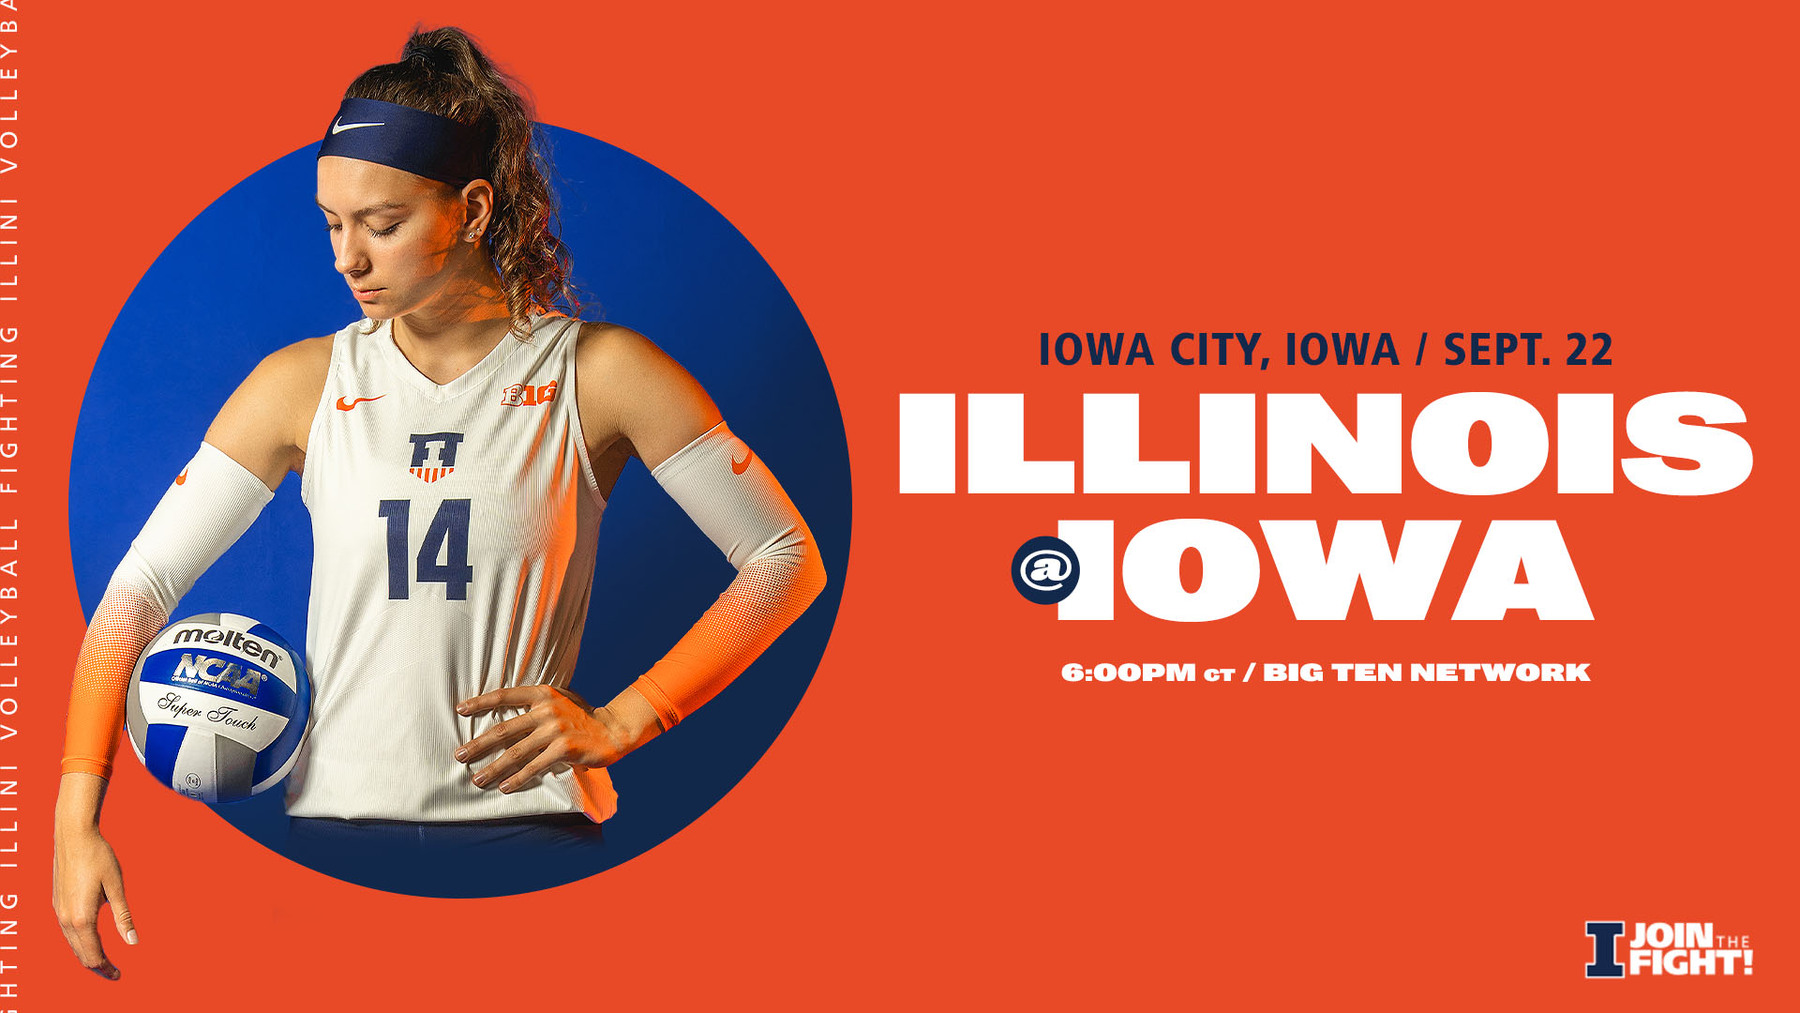 outside hitter Jessica Nunge featured in graphic advertising Wednesday's match